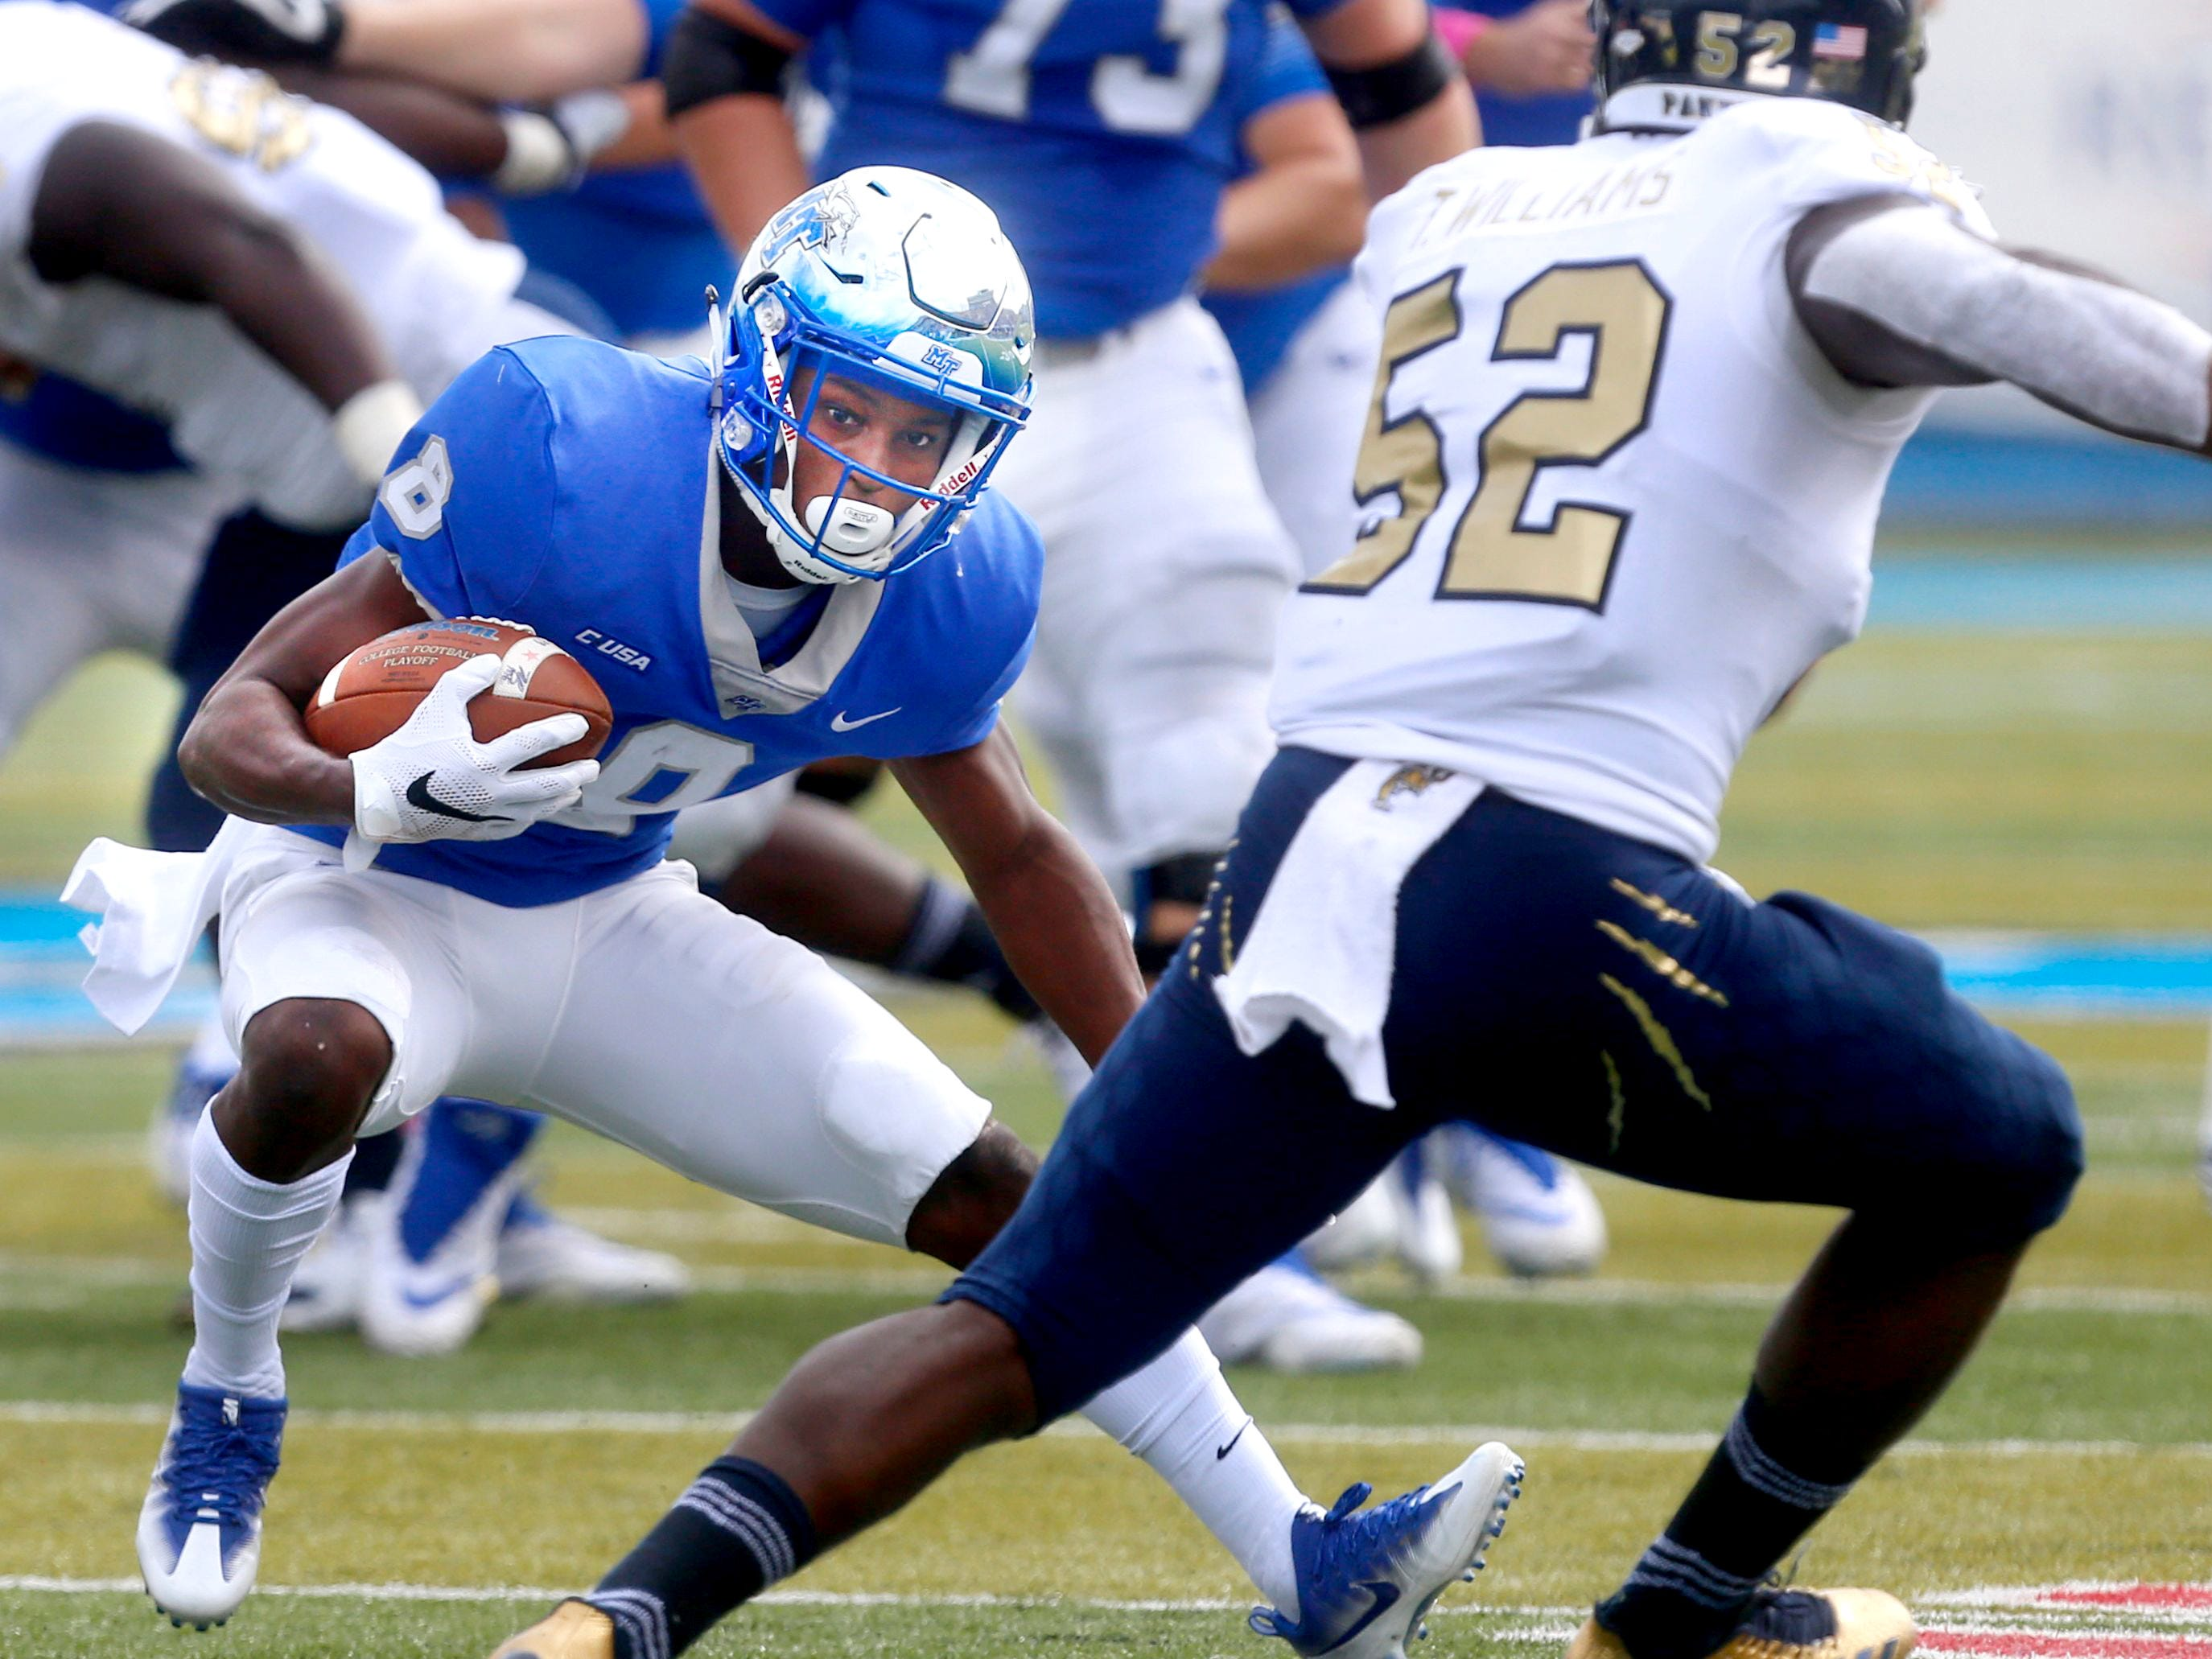 MTSU?s Ty Lee  runs the ball as FIU?s Treyvon Williams  moves in for the tackle during a game last season.